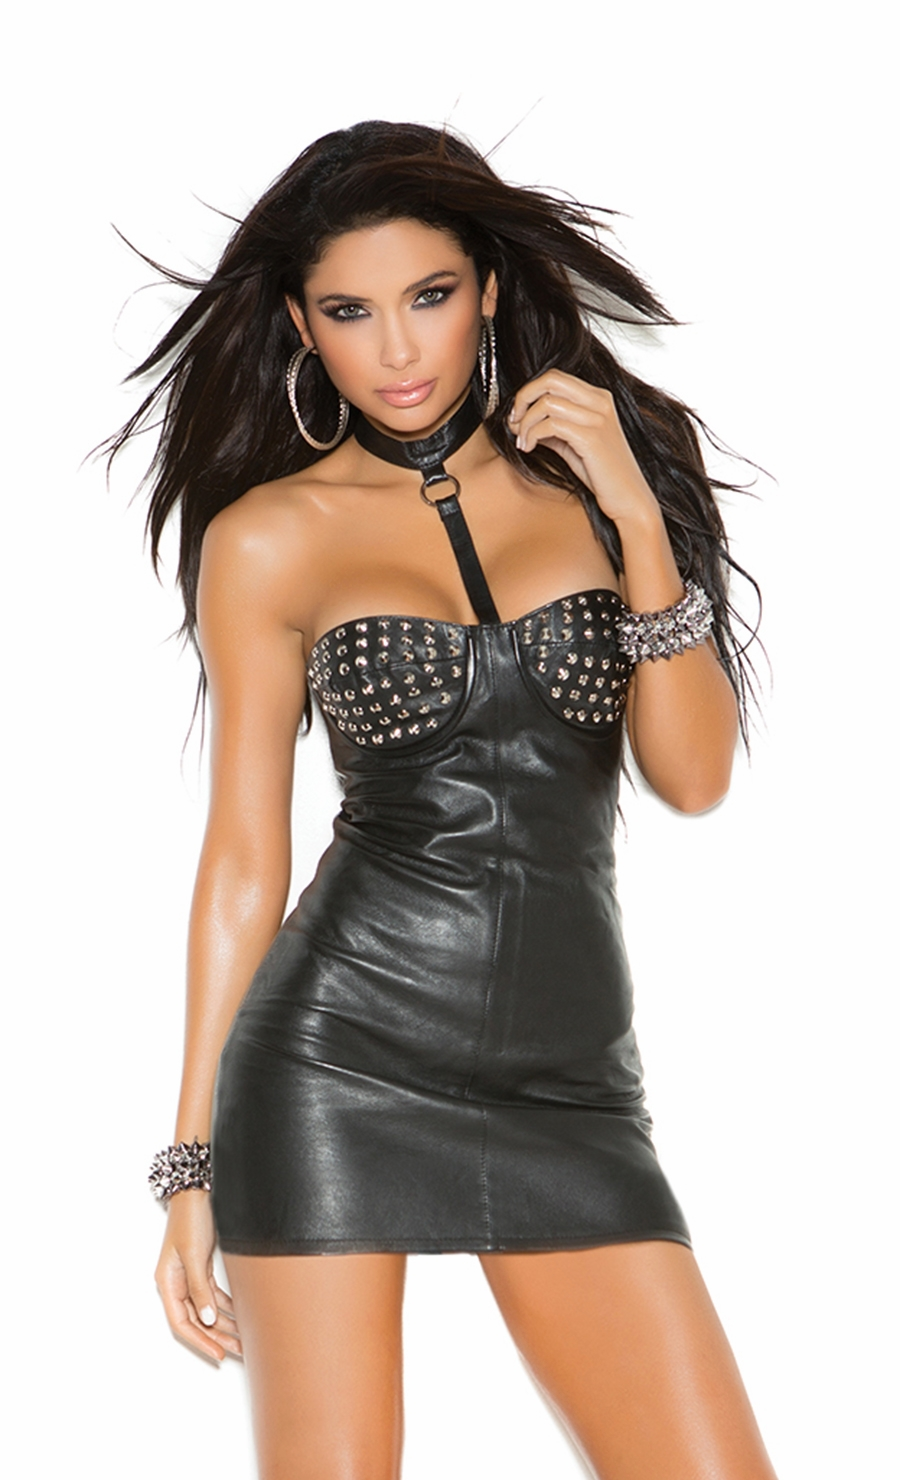 L8151 Black Leather Mini Dress With Studded Underwire Cups by Elegant Moments